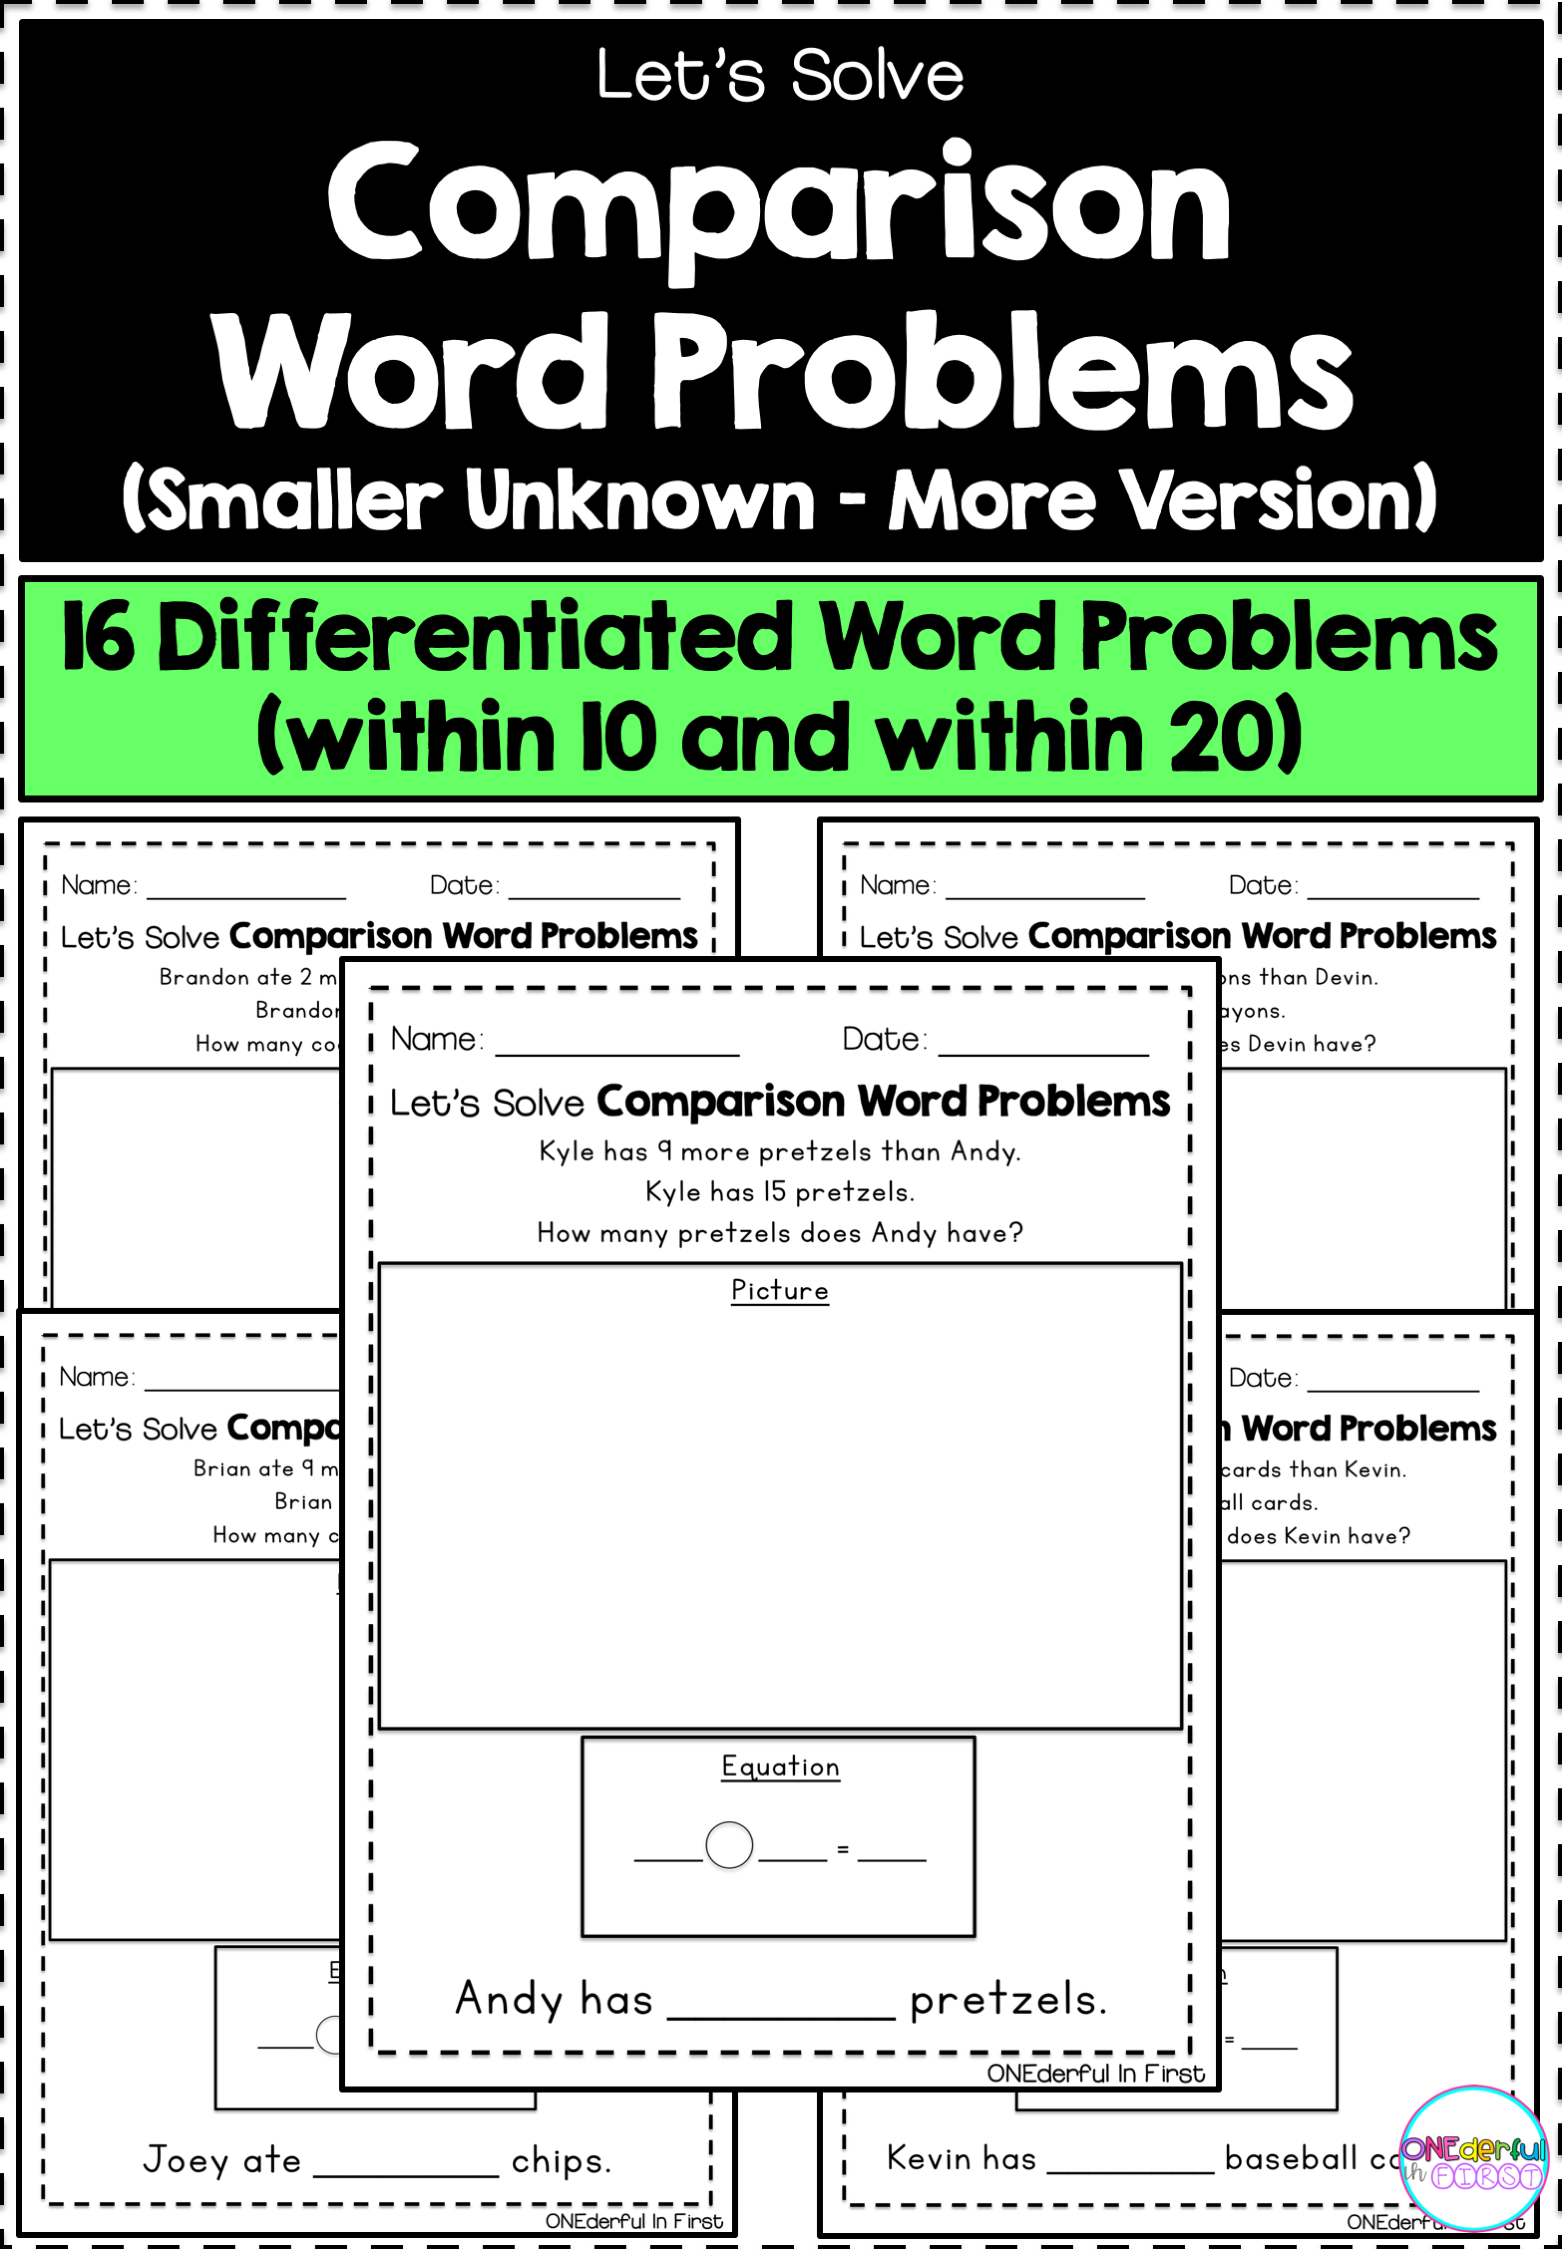 Comparison Word Problems Smaller Unknown